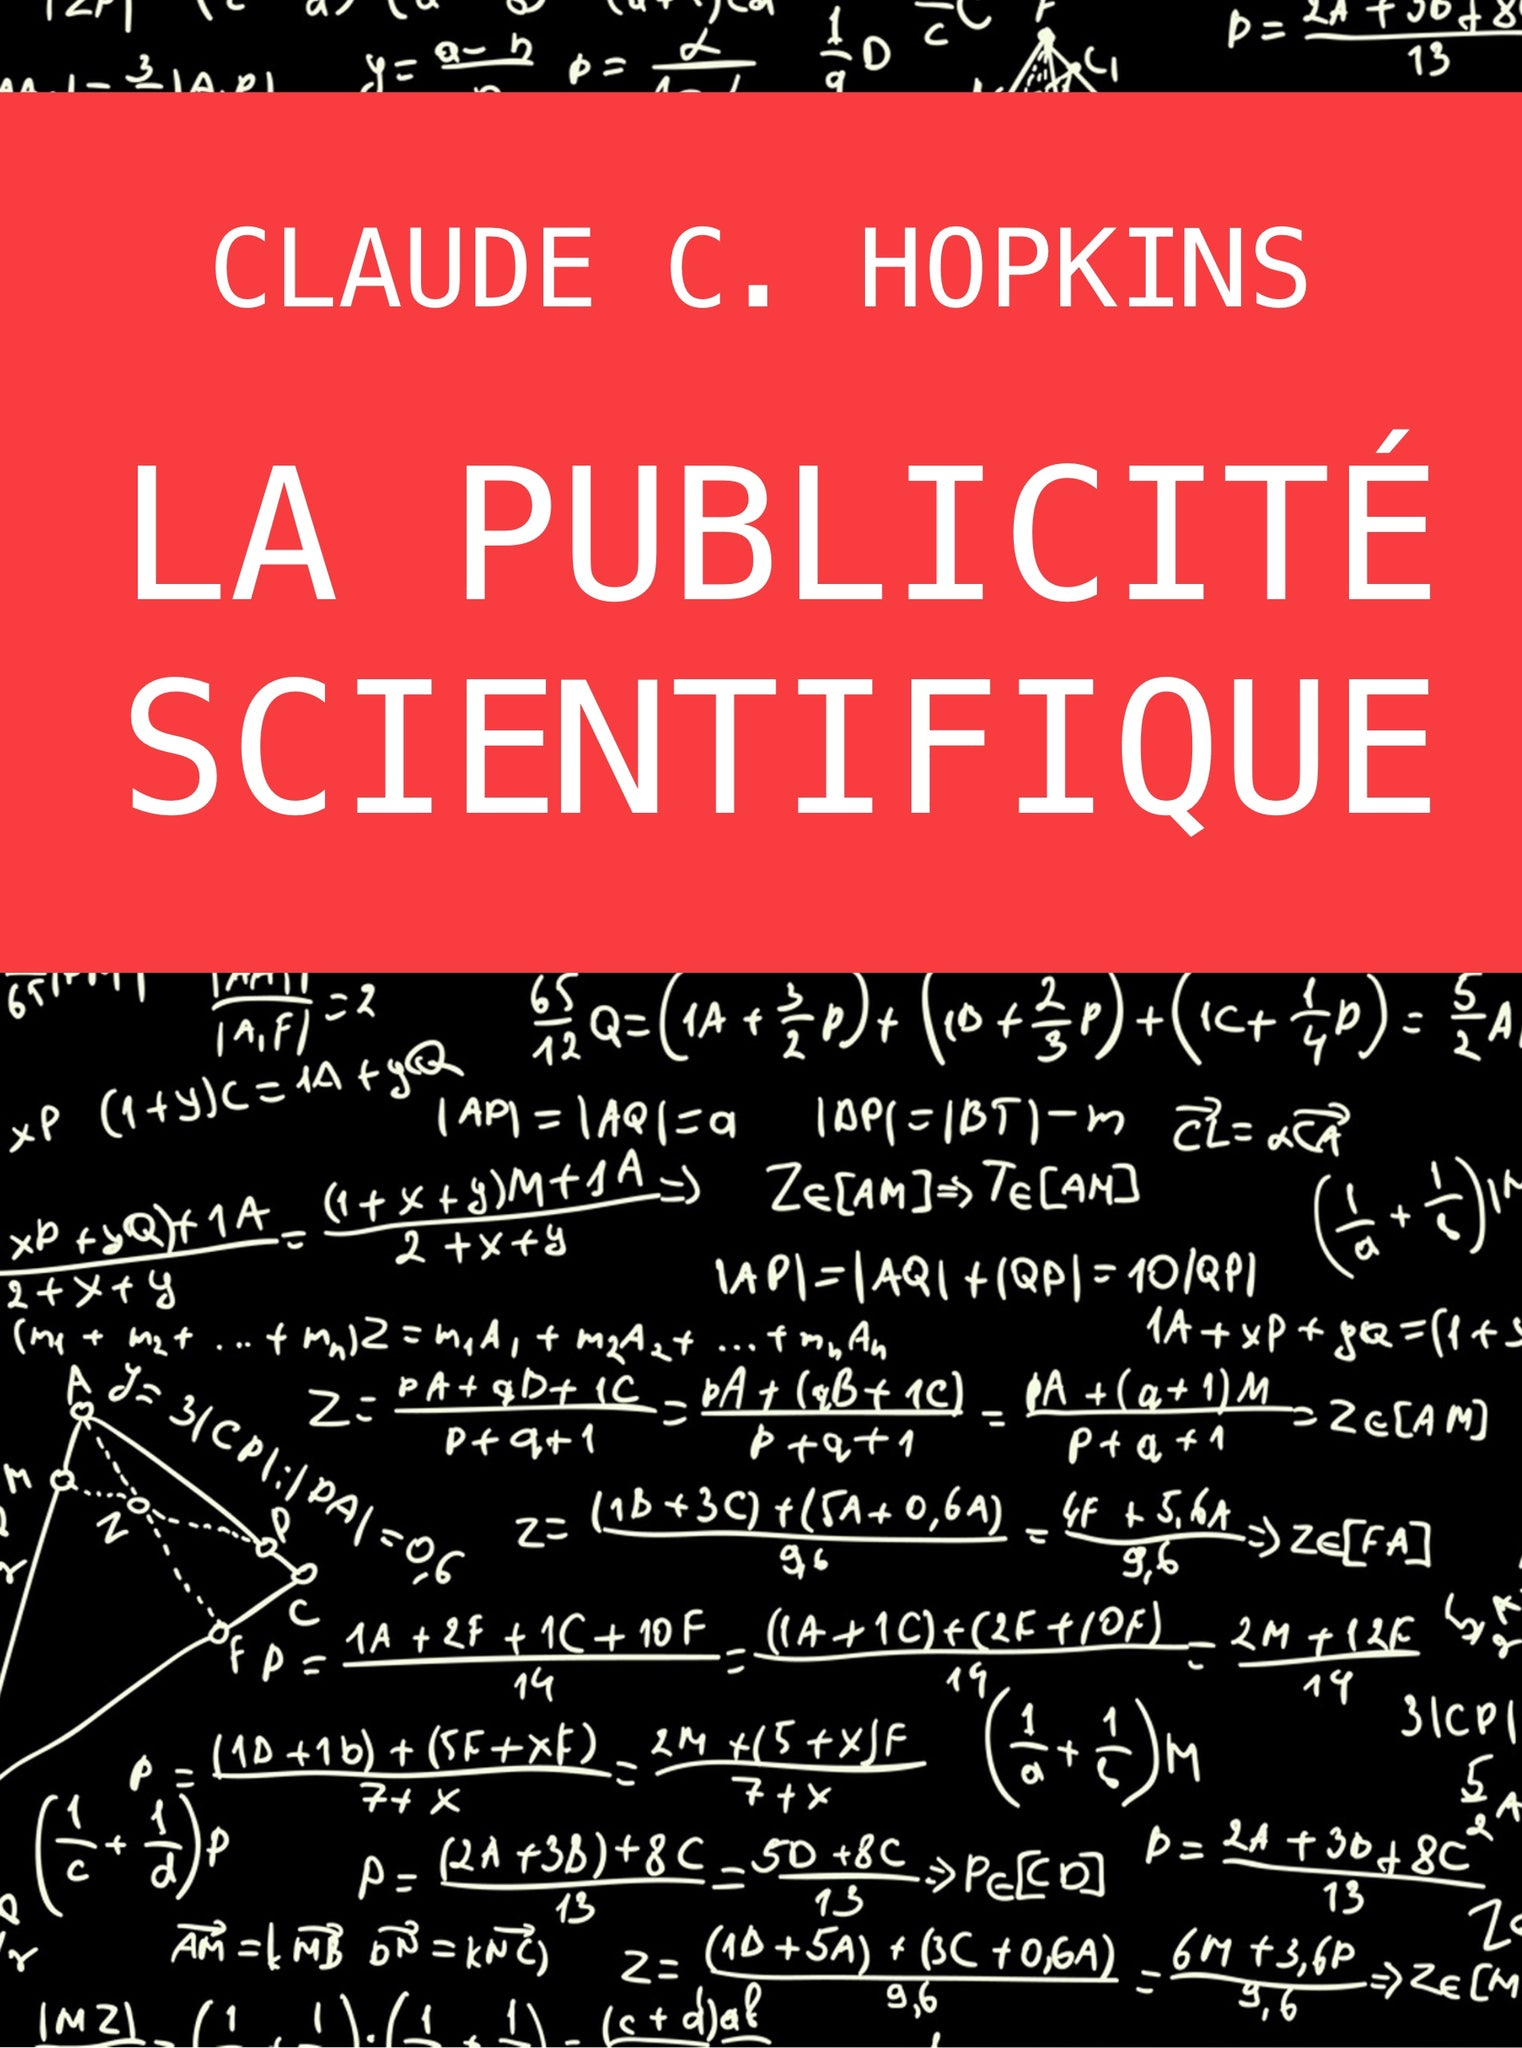 La publicité scientifique - papier